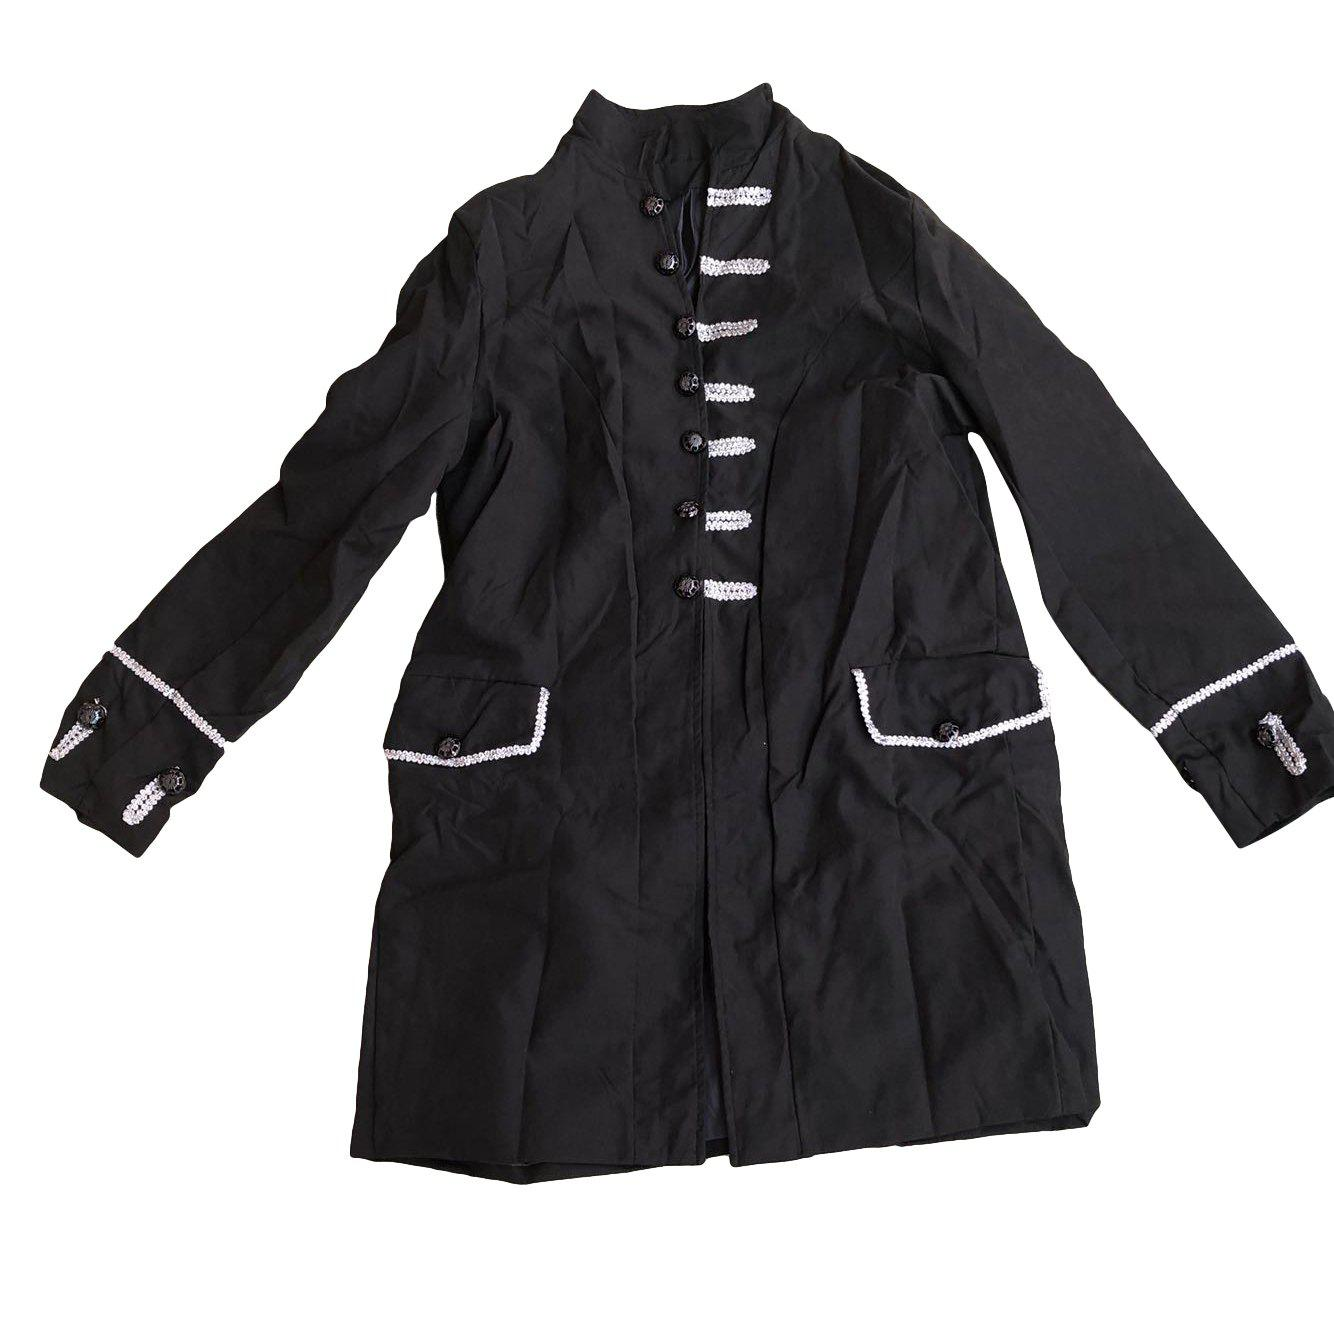 Men Vintage Jacket Outfit Jacquard Steampunk Gothic Cosplay Costume Overcoat - BLACK 2XL